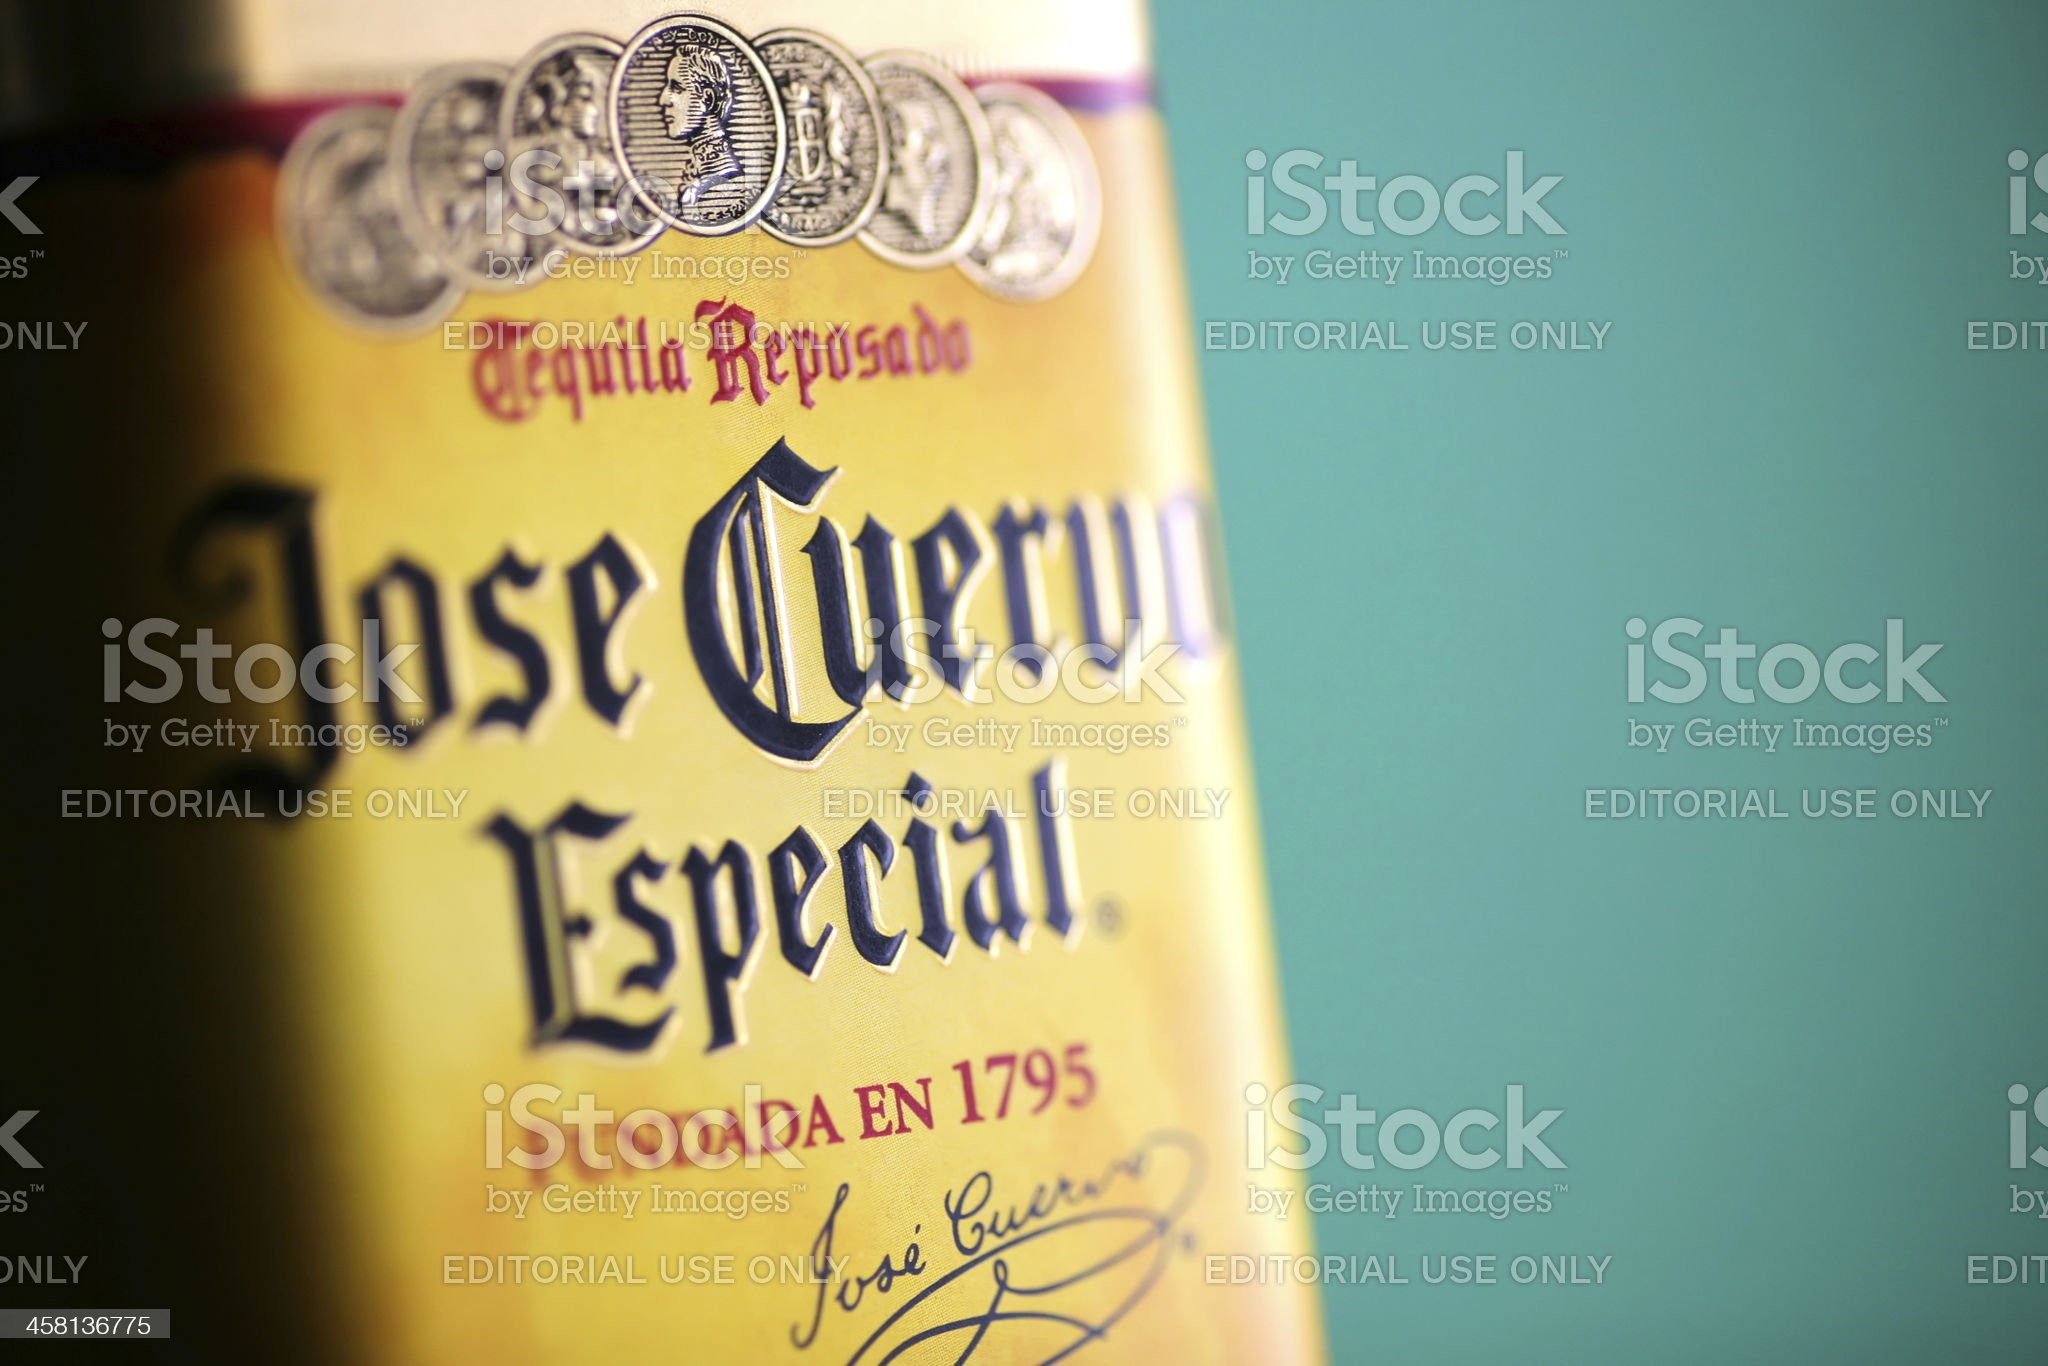 Jose Cuervo tequila bottle royalty-free stock photo